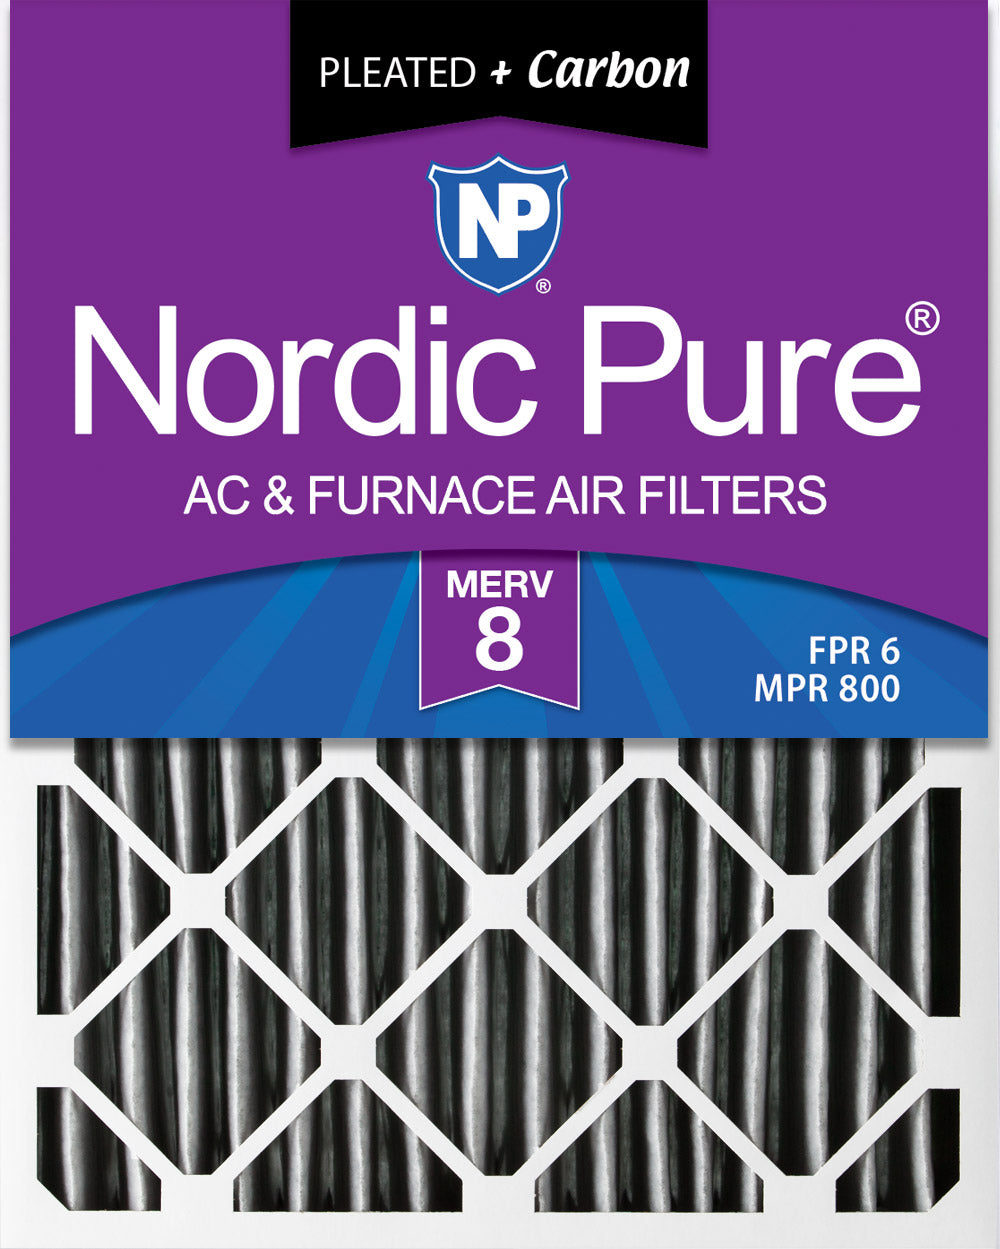 16x20x4 (3 5/8) Furnace Air Filters MERV 8 Pleated Plus Carbon 2 Pack